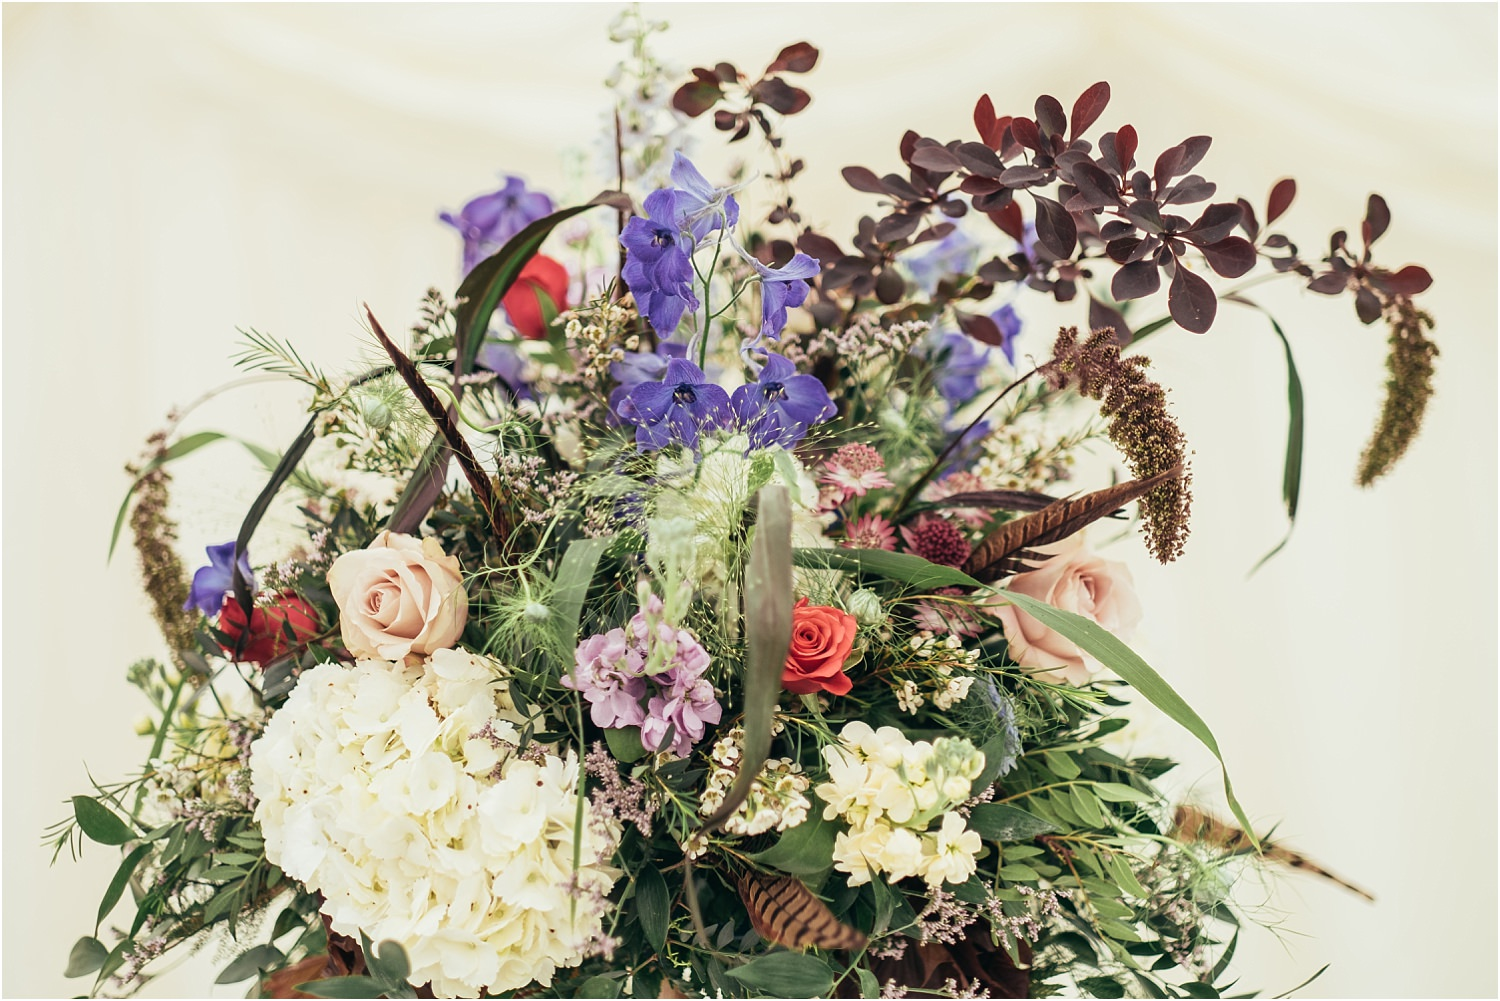 Beautiful table decoration by The Flower Shop of Clitheroe, Lancashire